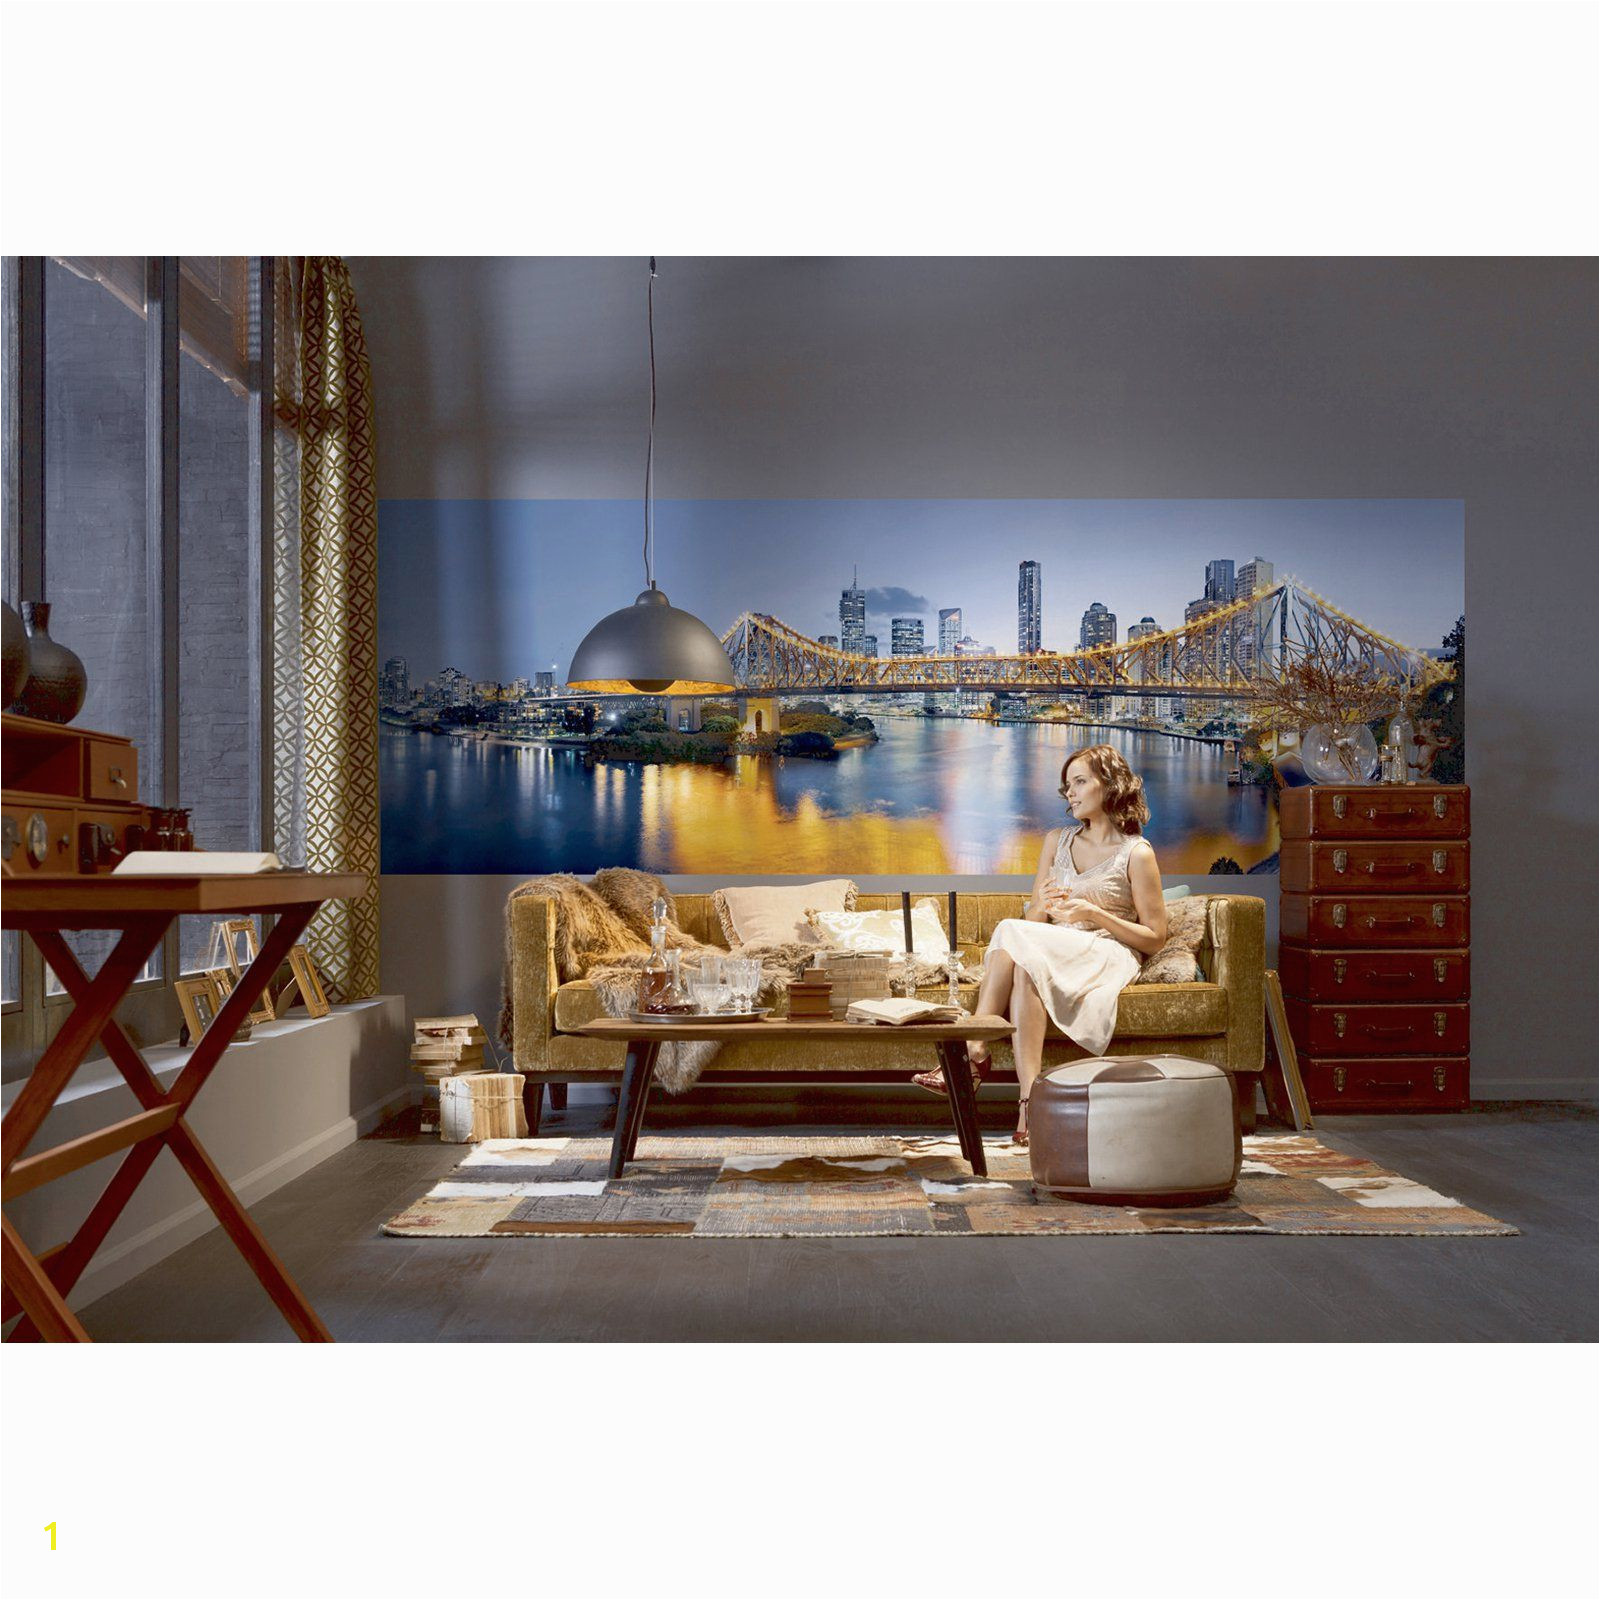 Komar Brisbane Wall Mural XXL2 010 Skyline Von New York Stone Wallpaper